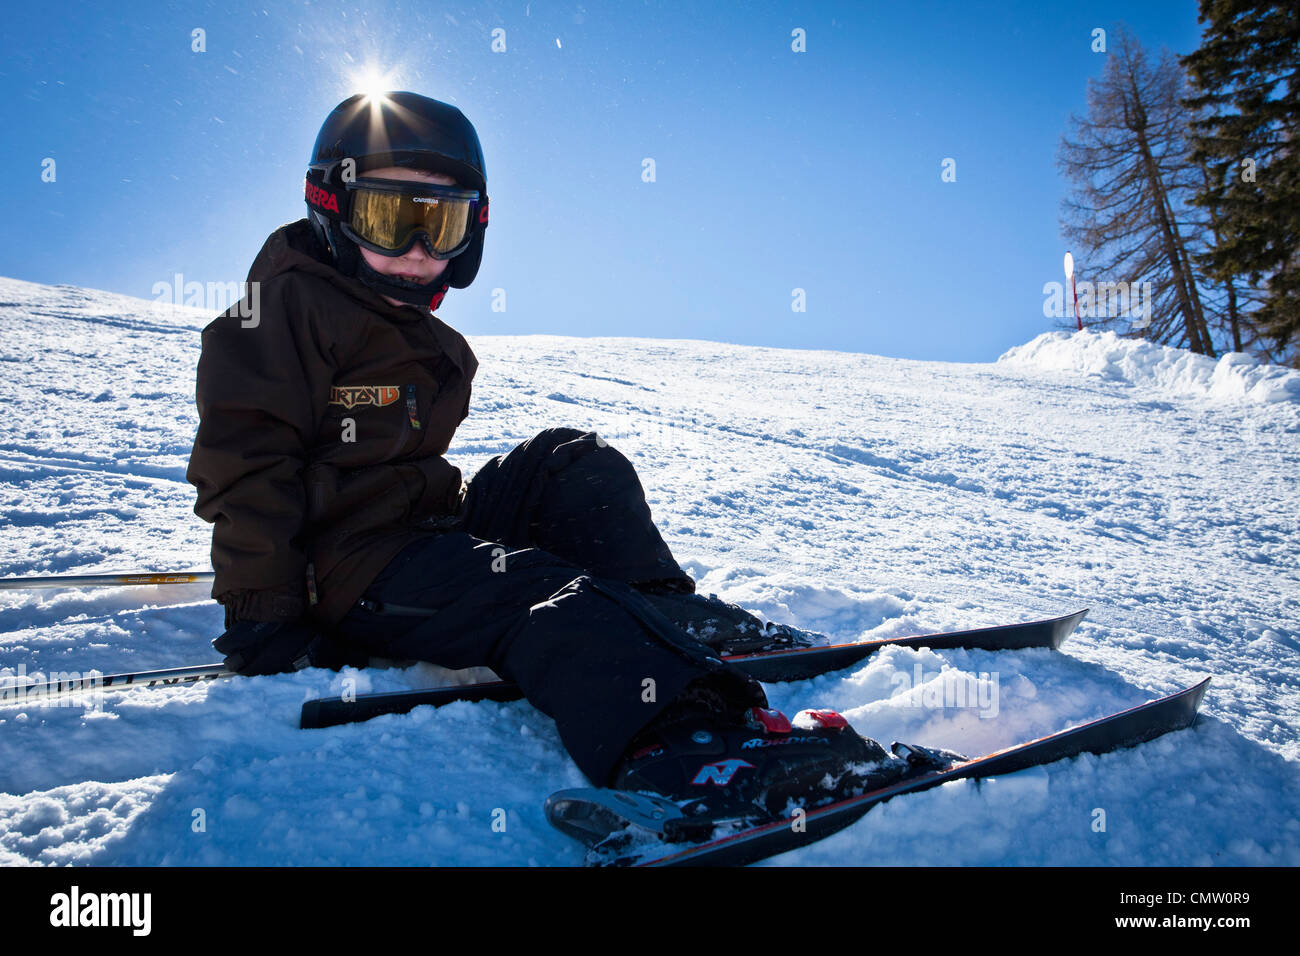 Gull length of a boy in ski slope - Stock Image